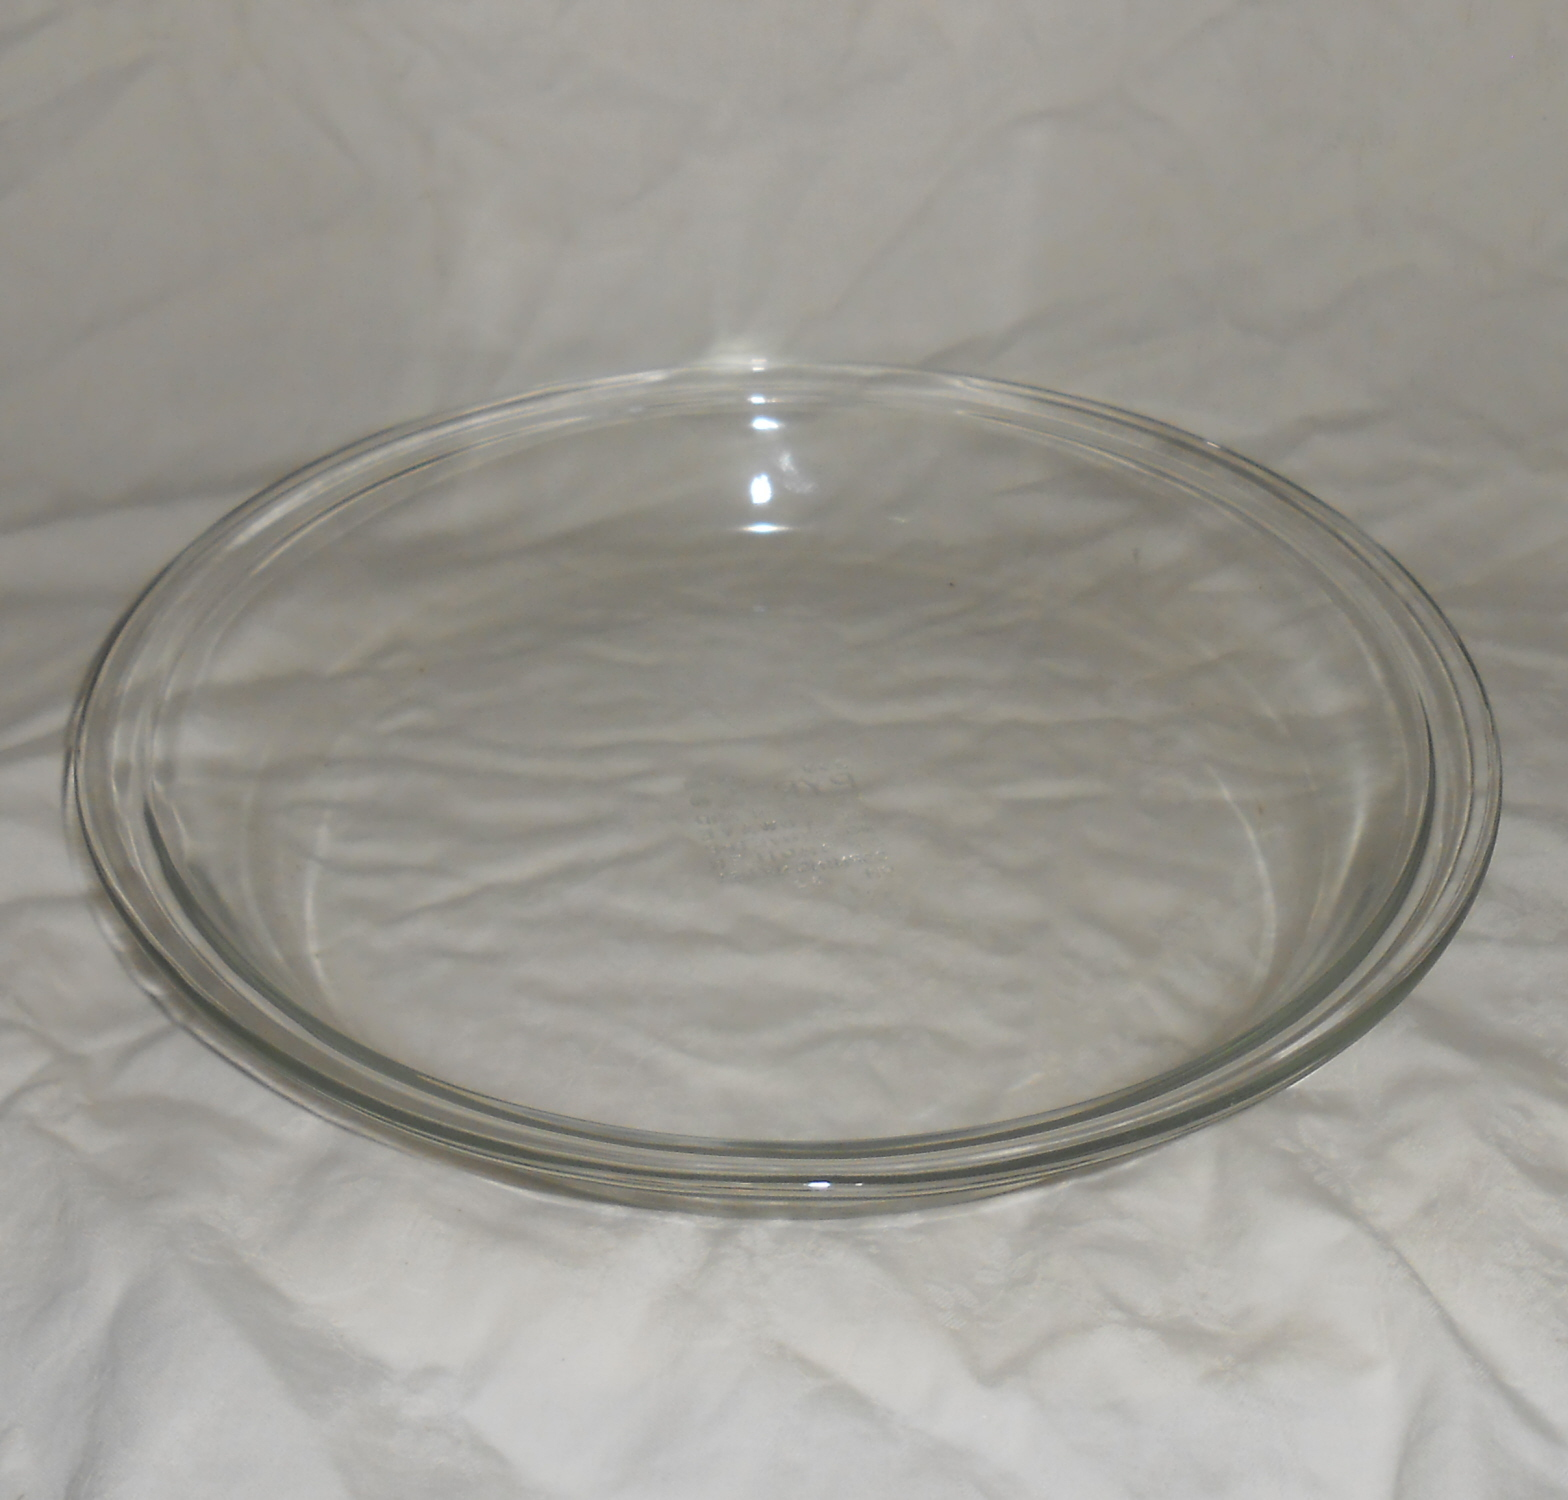 Vintage 9 inch Pyrex #209 Clear Glass Pie Plate & Vintage 9 inch Pyrex #209 Clear Glass Pie and 11 similar items